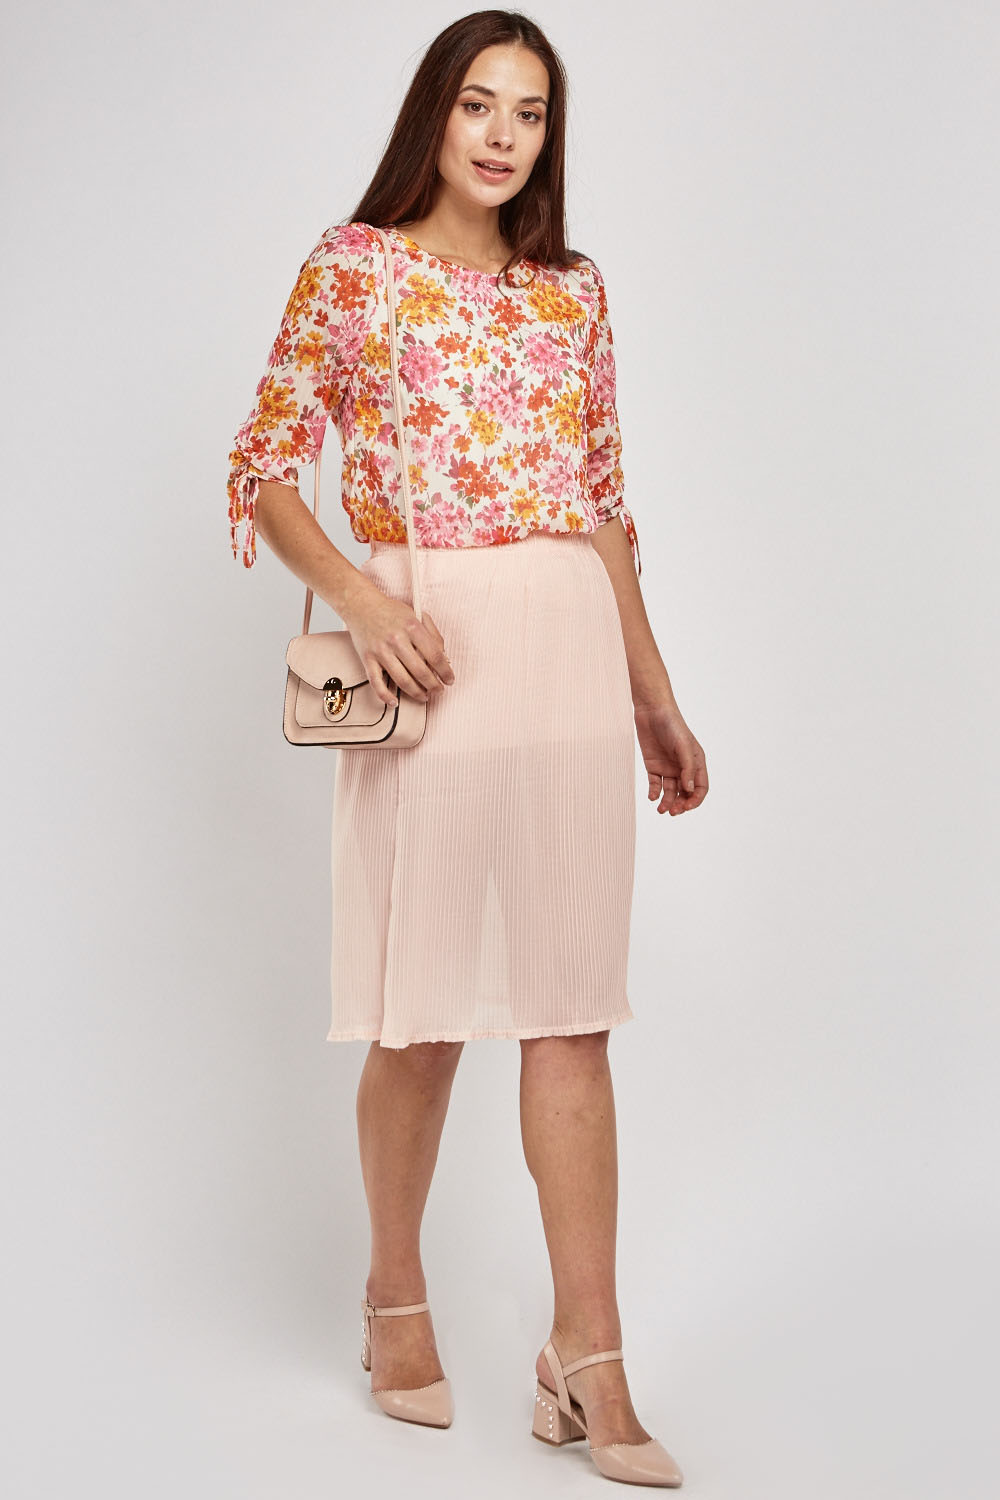 Floral Print Sheer Chiffon Blouse - Pink Multi - Just £5 a035aae68